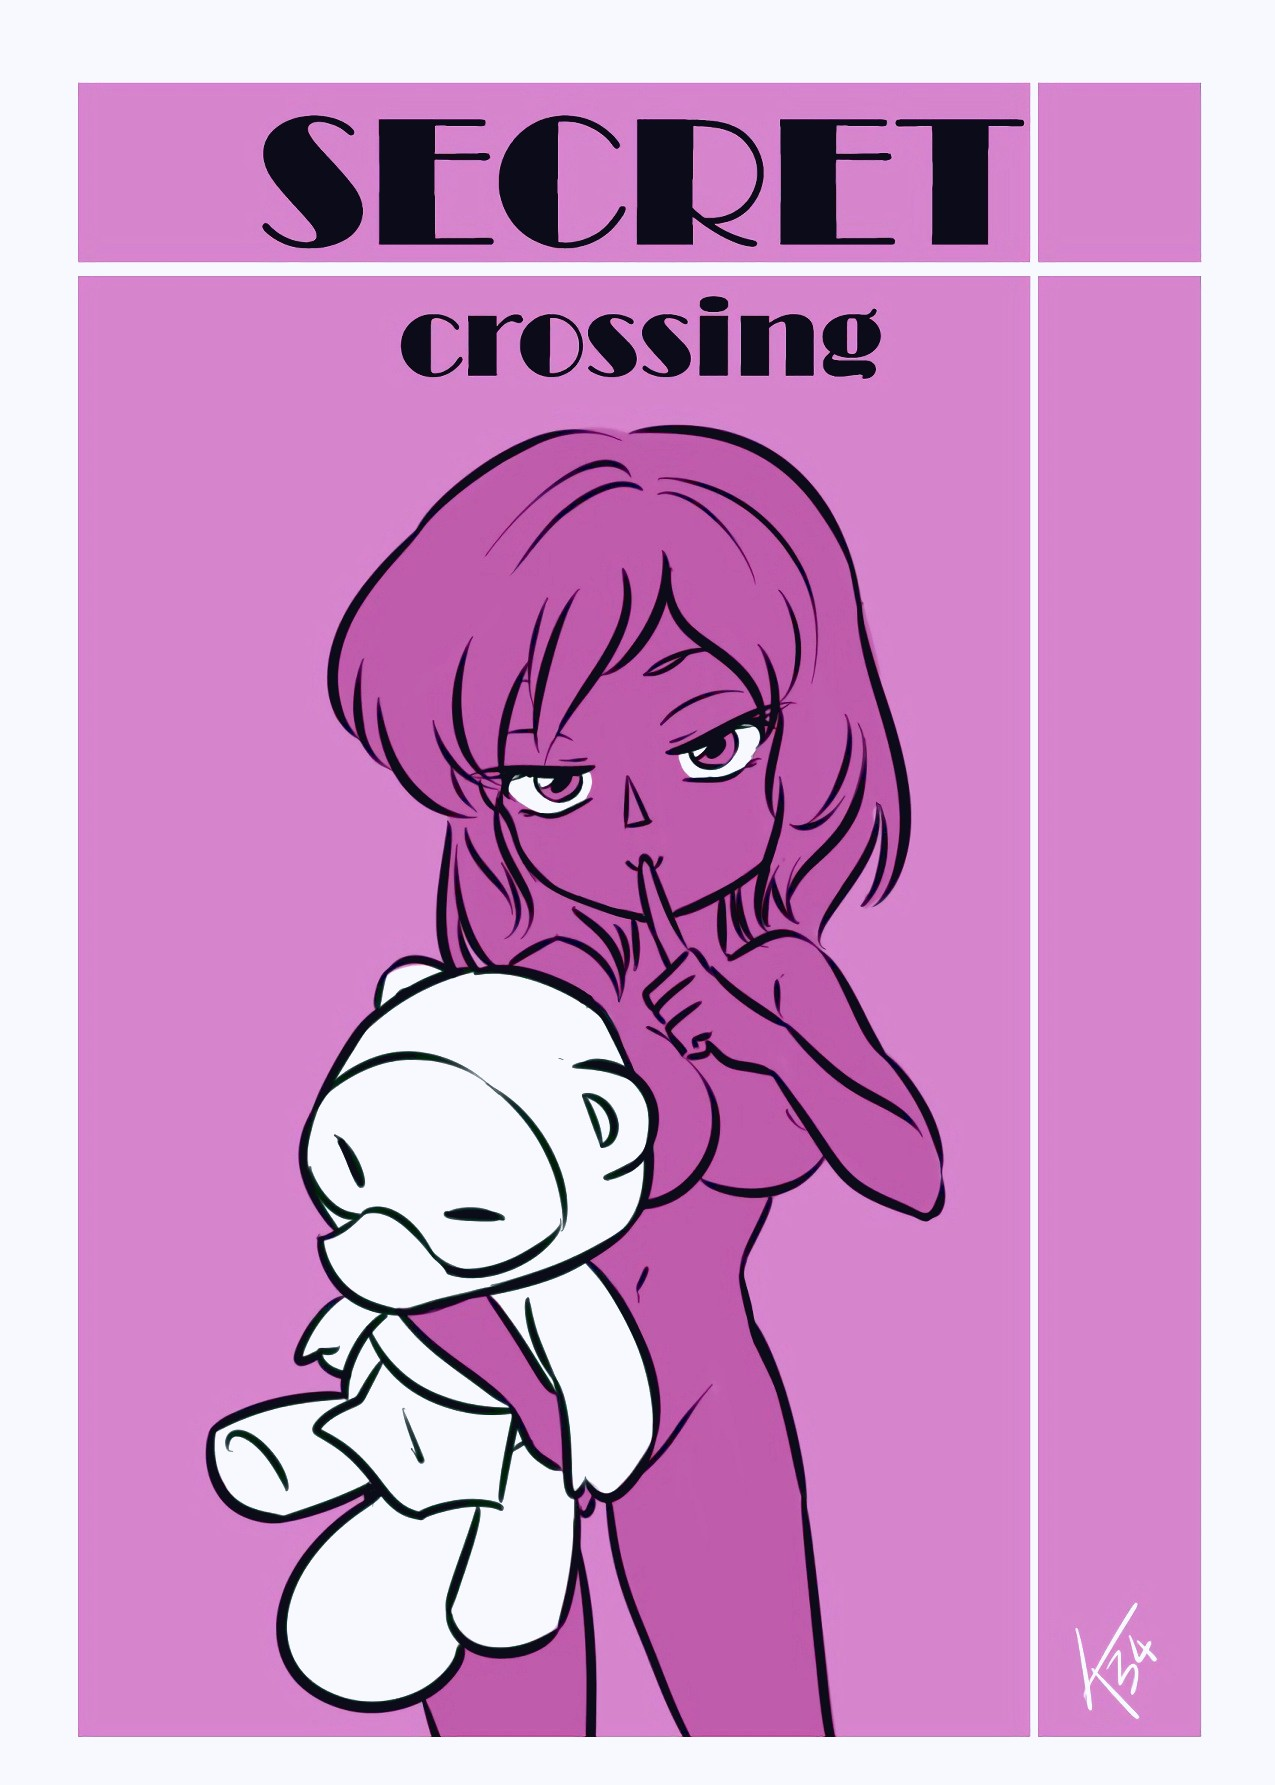 Secret Crossing porn comic page 01 on category Animal Crossing